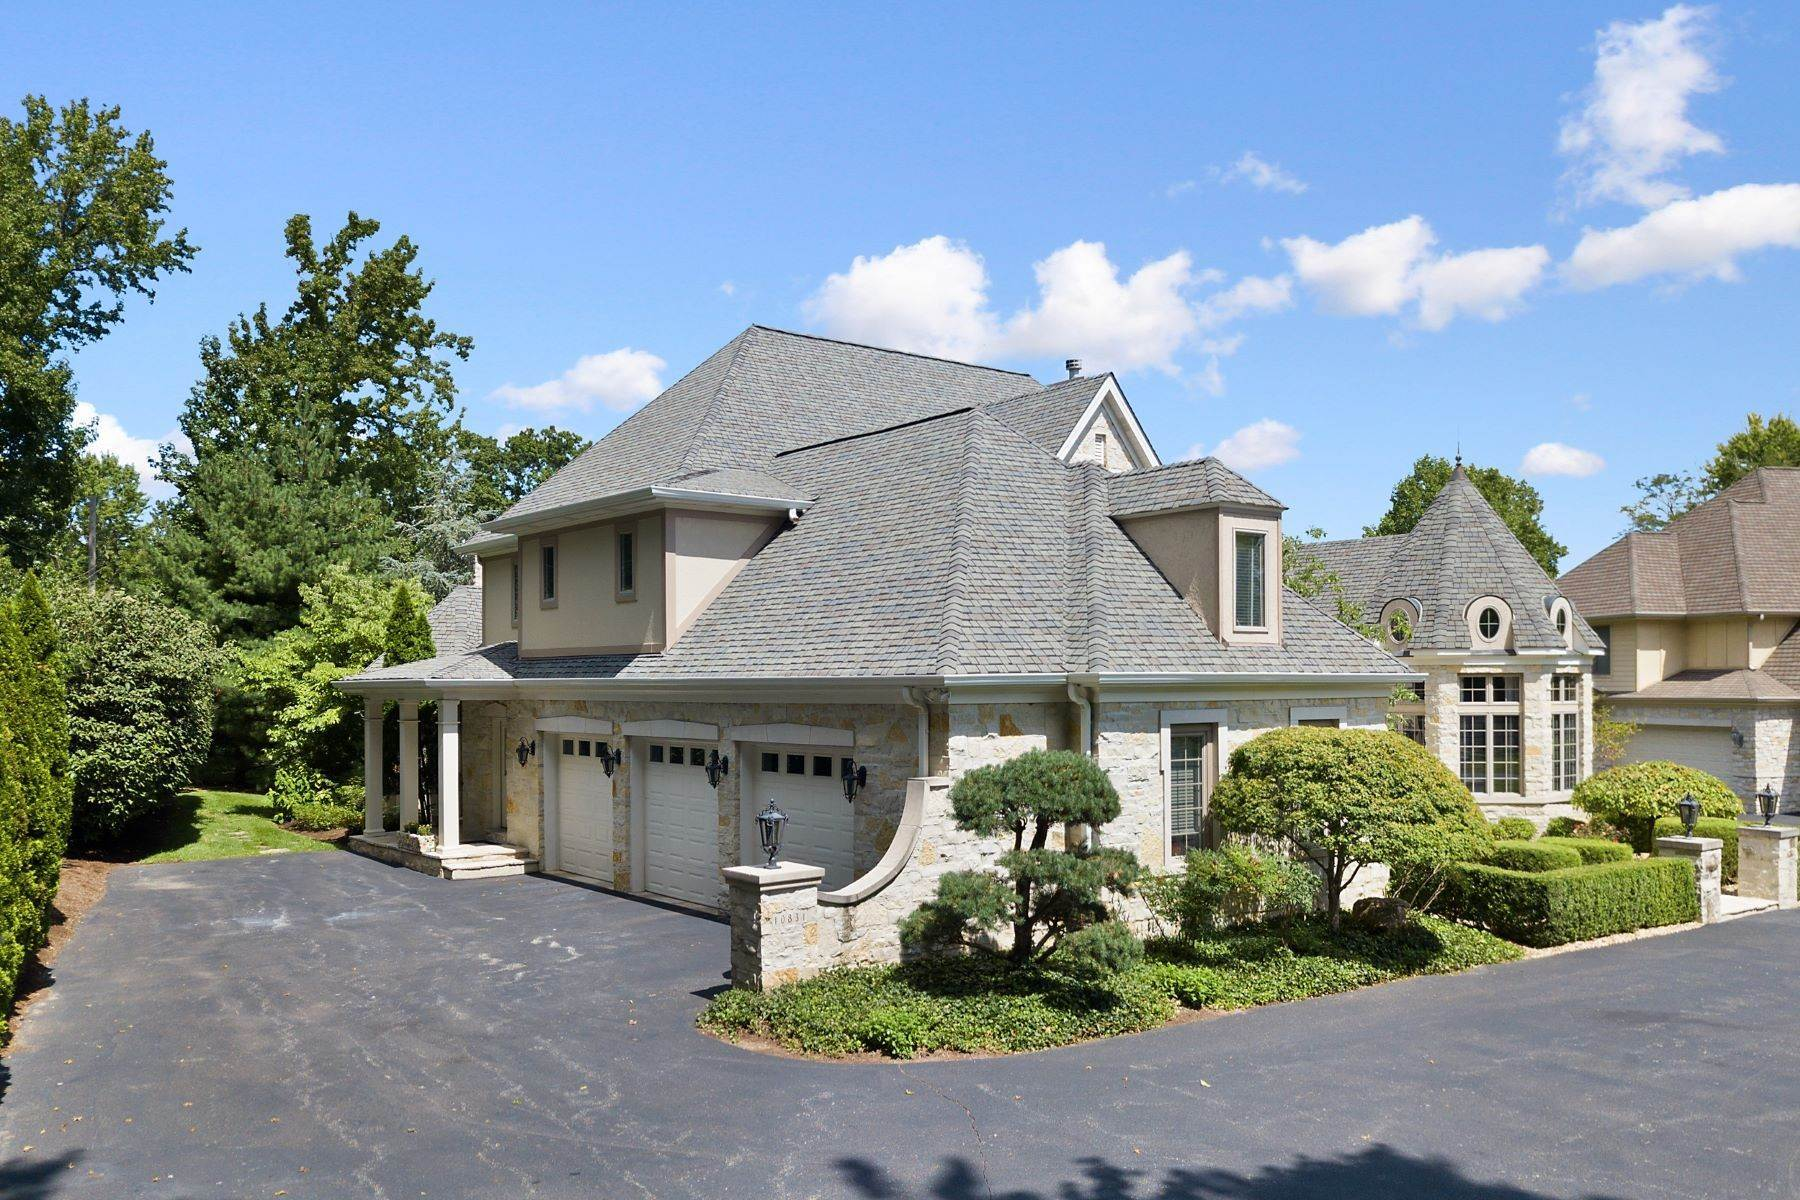 37. Single Family Homes for Sale at Outstanding Private Gated Stone 1.5 Story 10831 Ladue Road Creve Coeur, Missouri 63141 United States